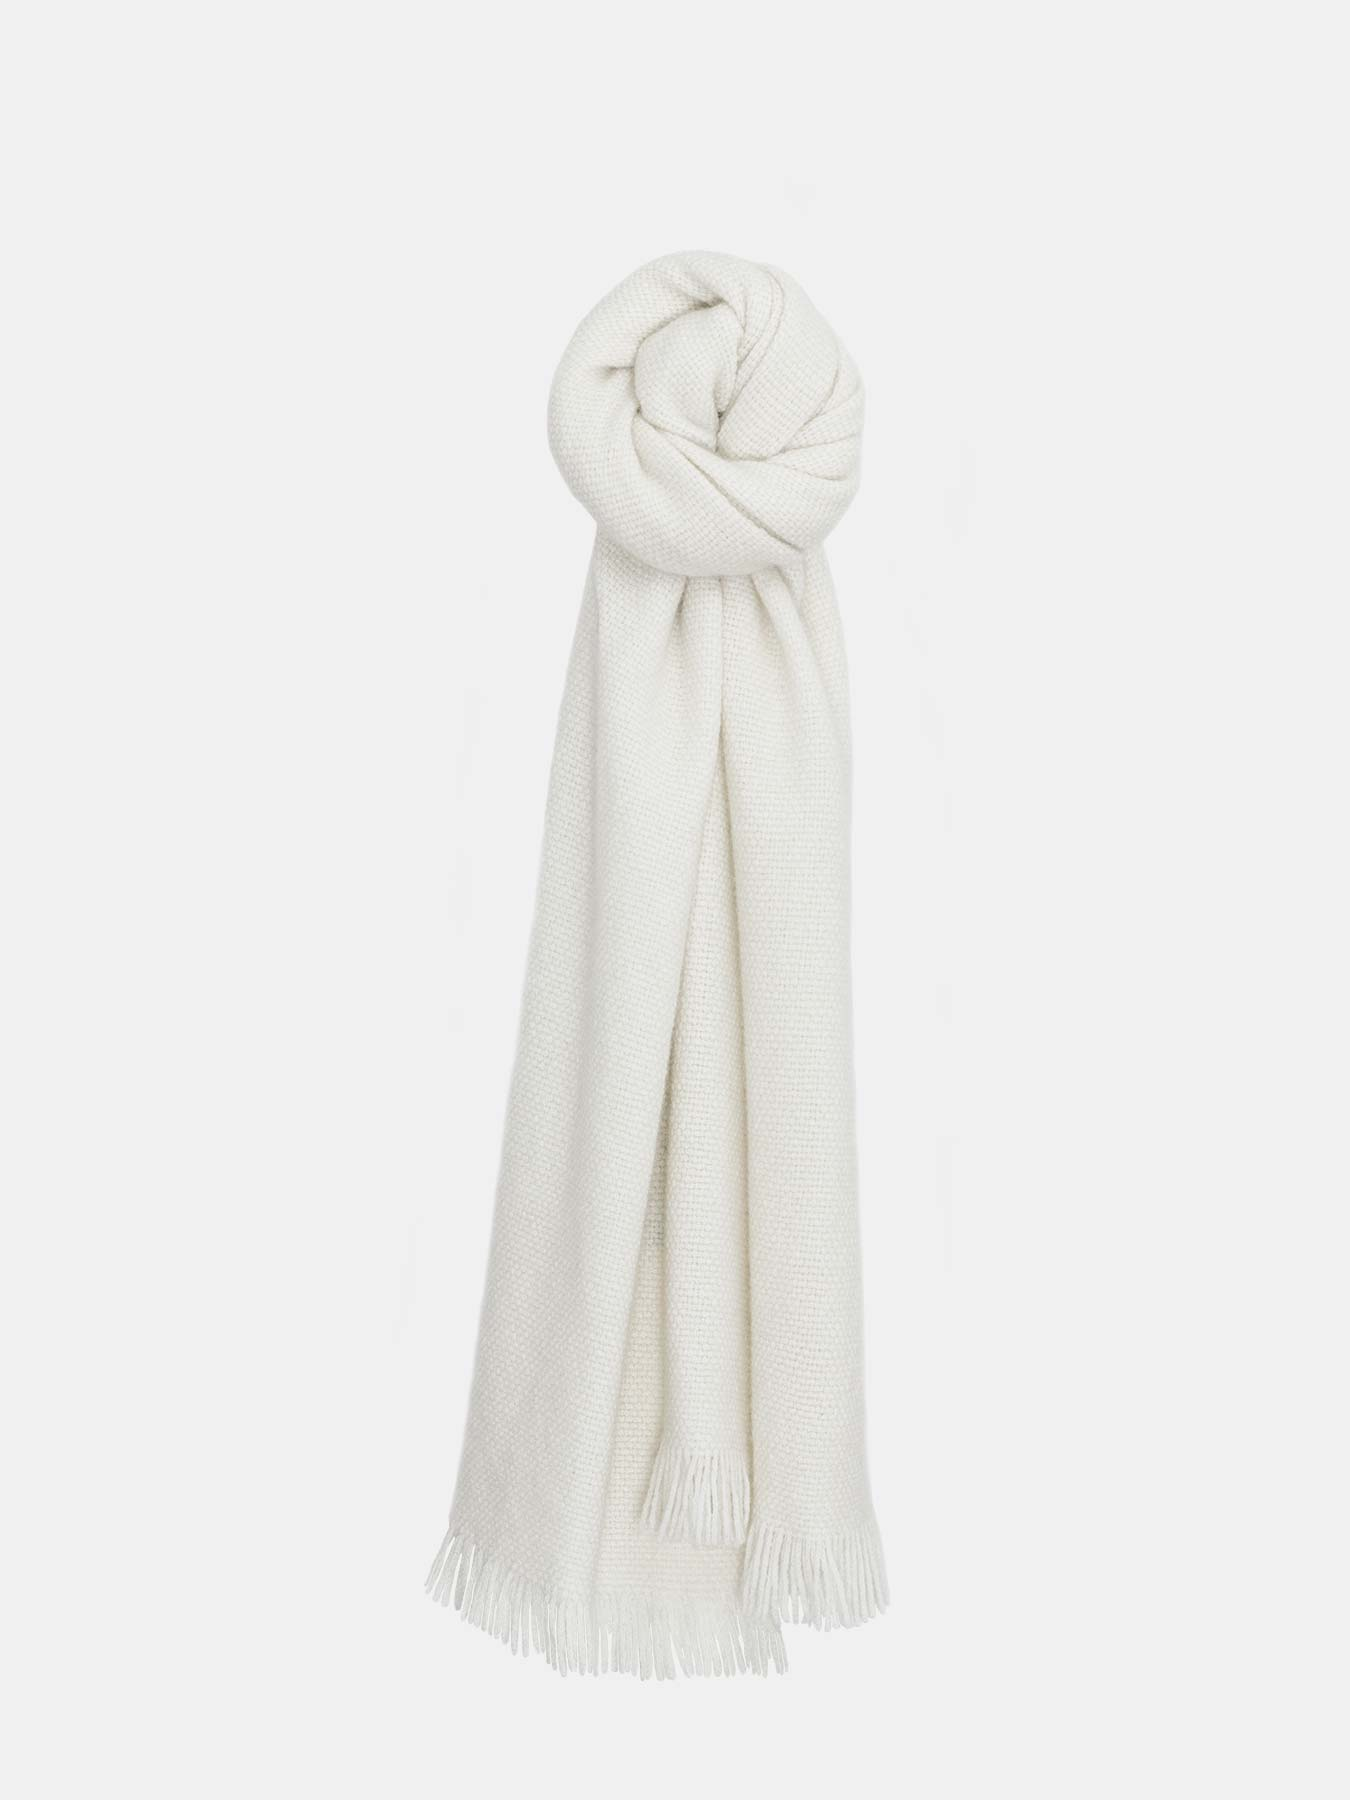 Classic Knitted Cashmere Scarf Ivory-p1.1